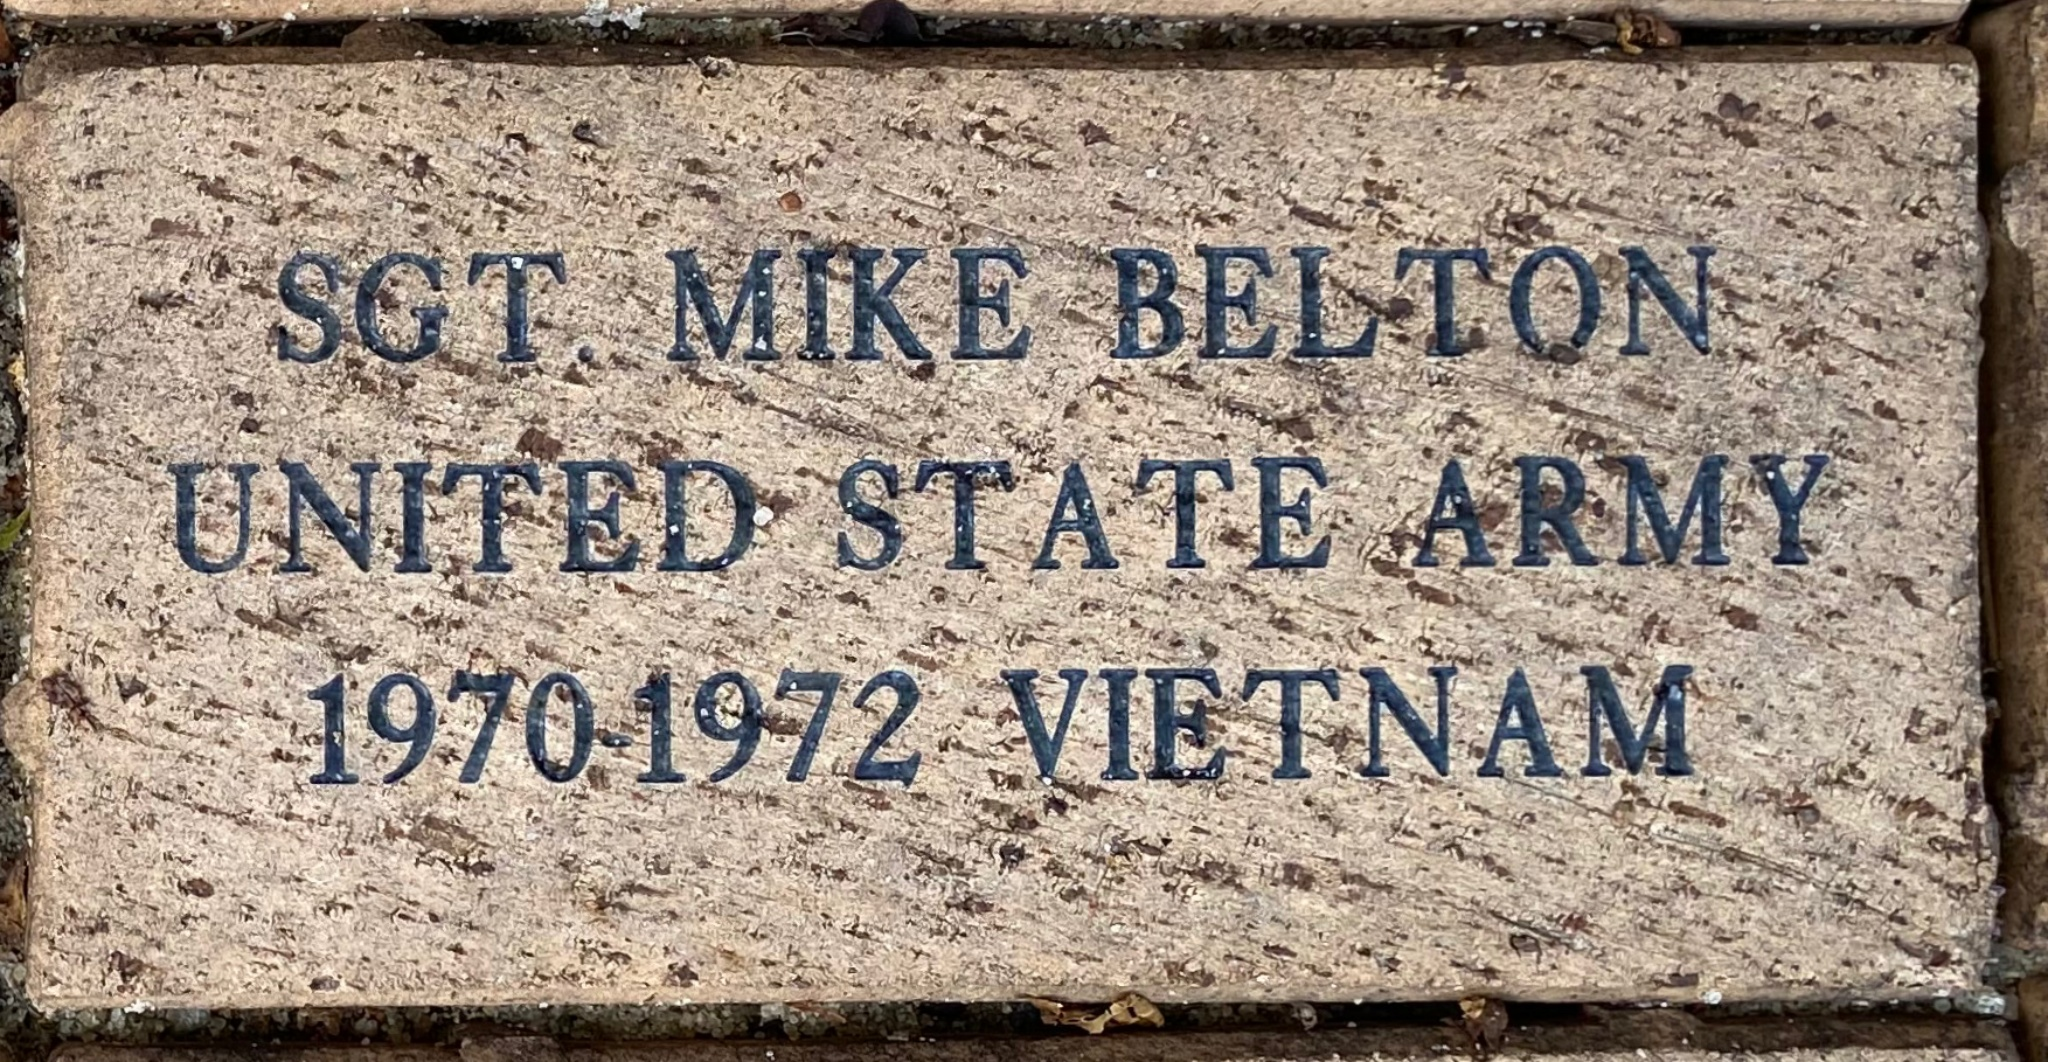 SGT. MIKE BELTON UNITED STATES ARMY 1970-1972 VIETNAM